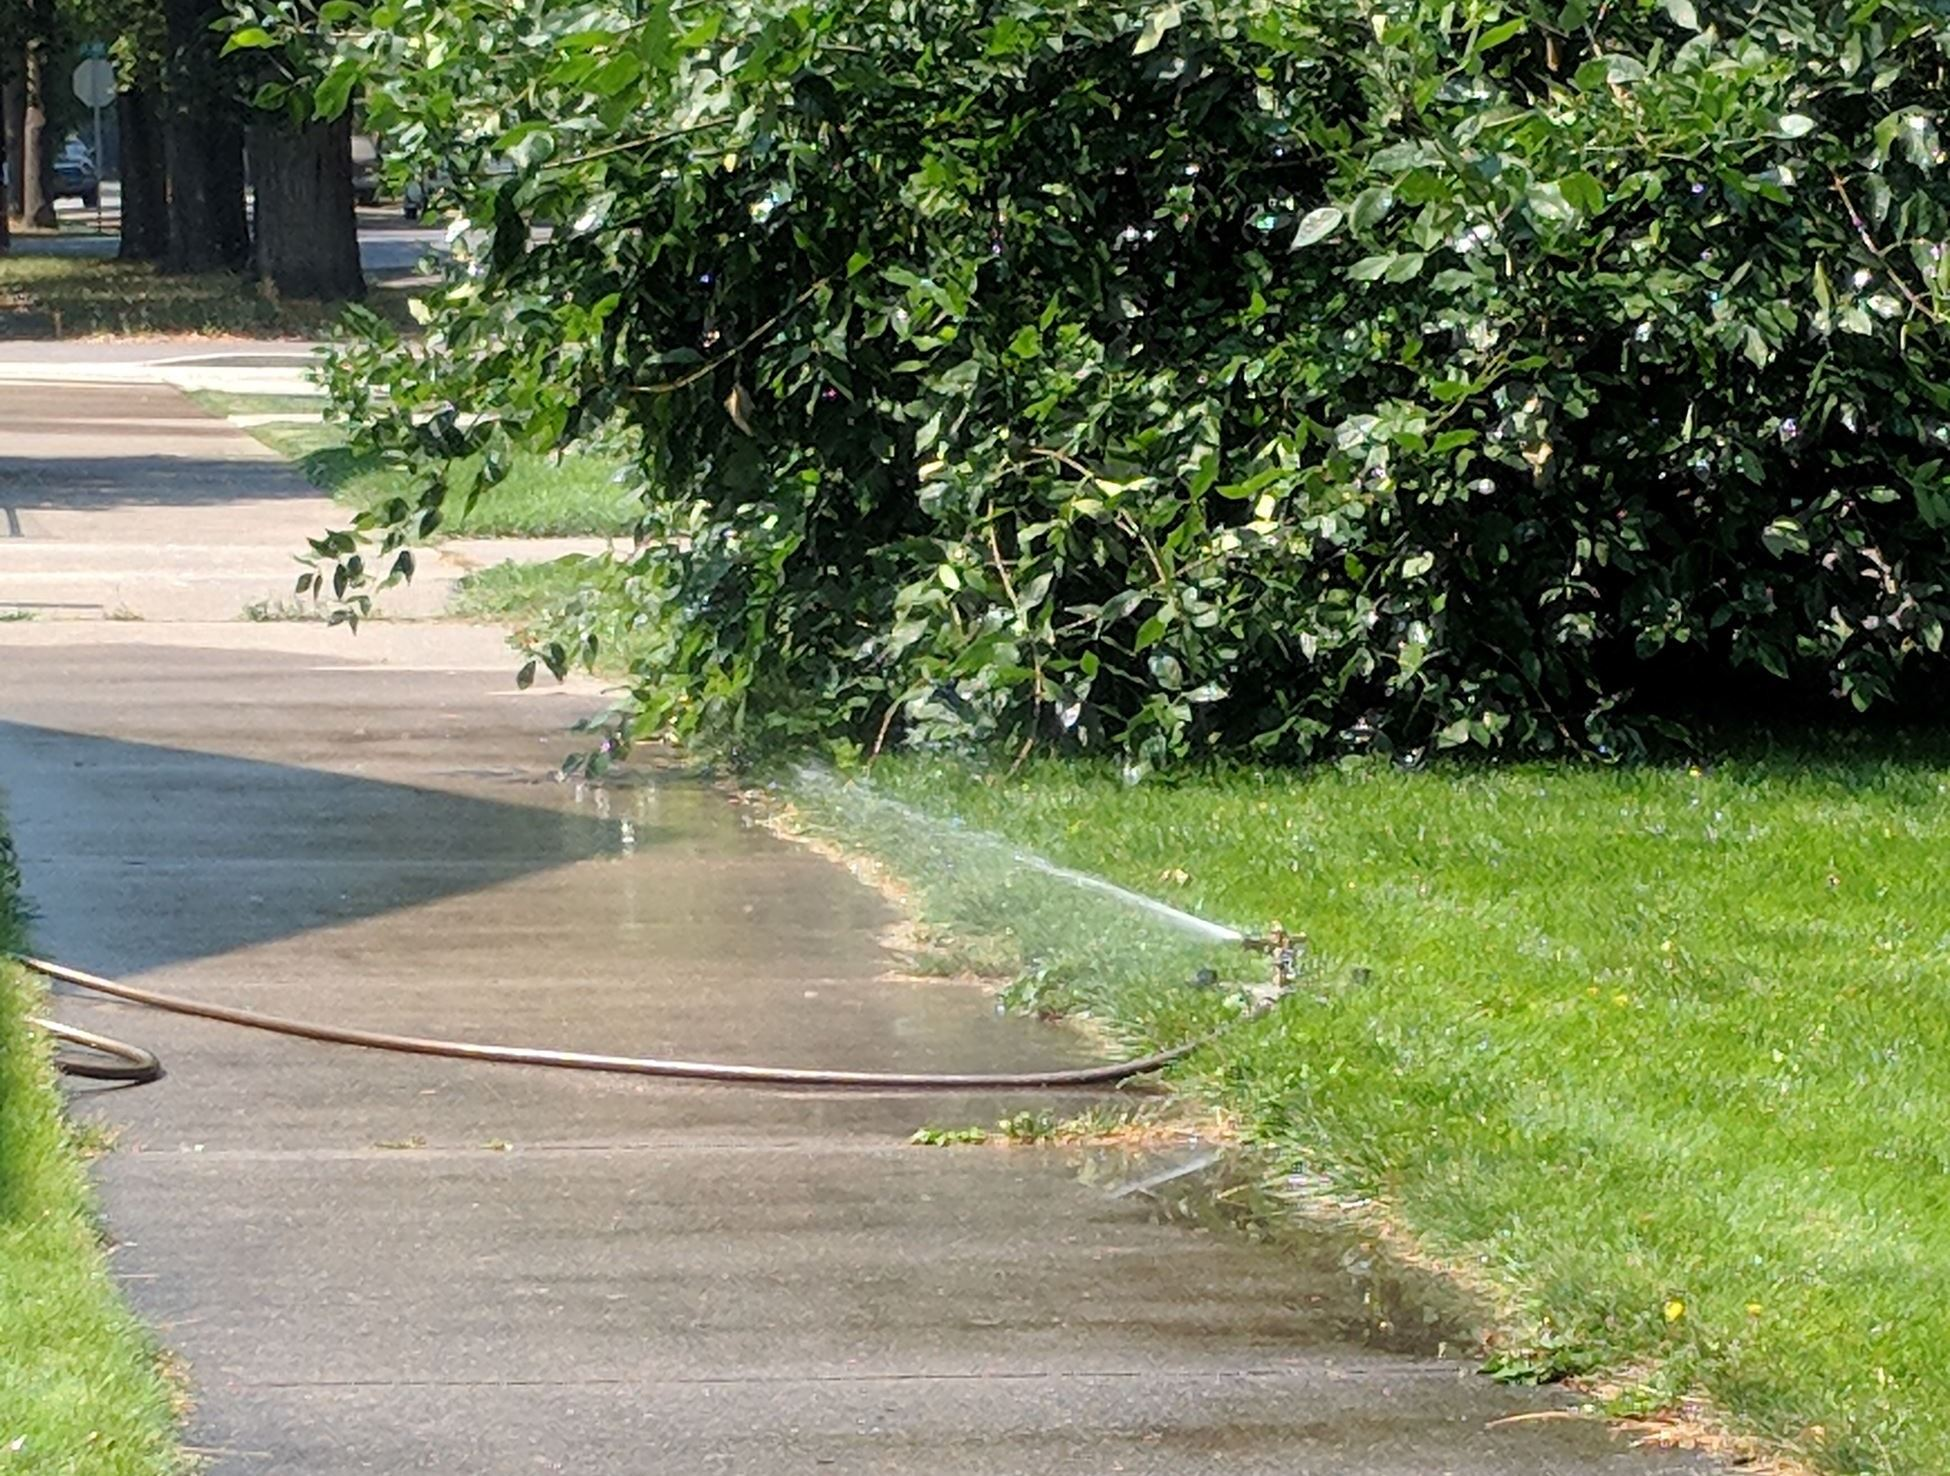 Sprinkler watering the sidewalk